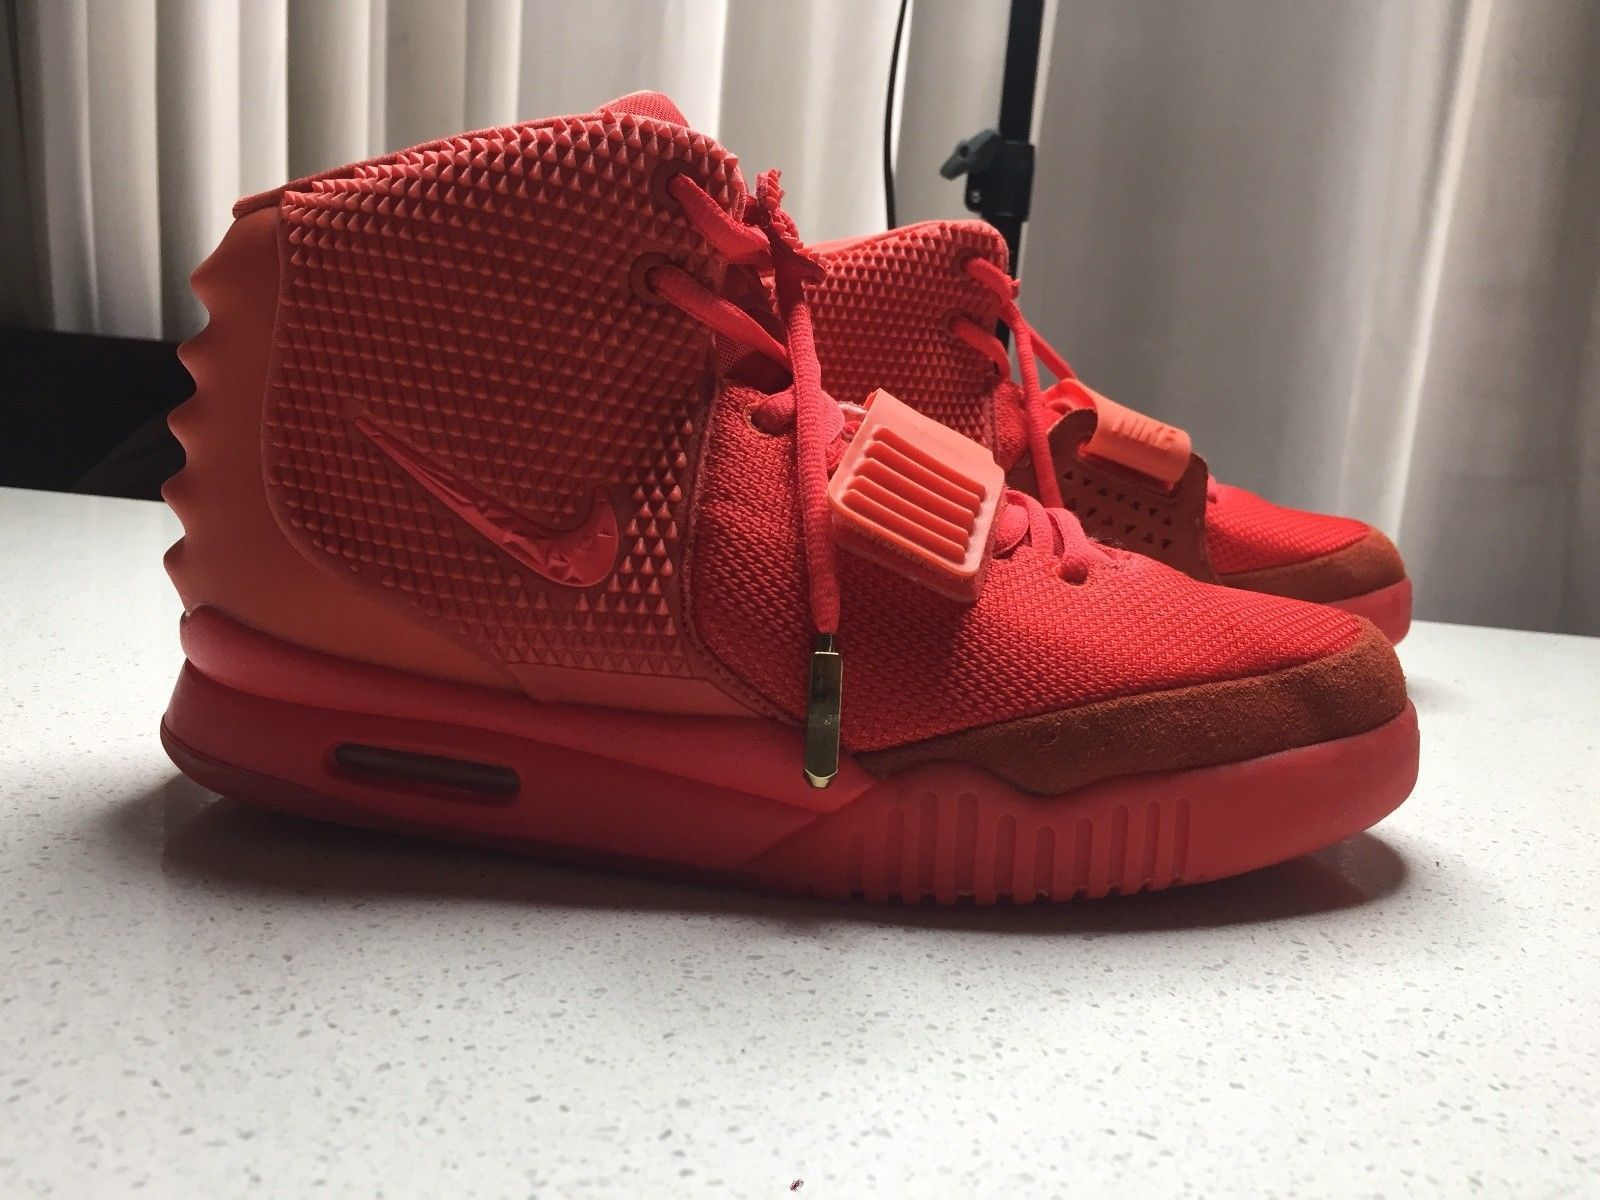 caebdf679 where to buy nike air yeezy 2 red october 100 authentic 61269 87bc4